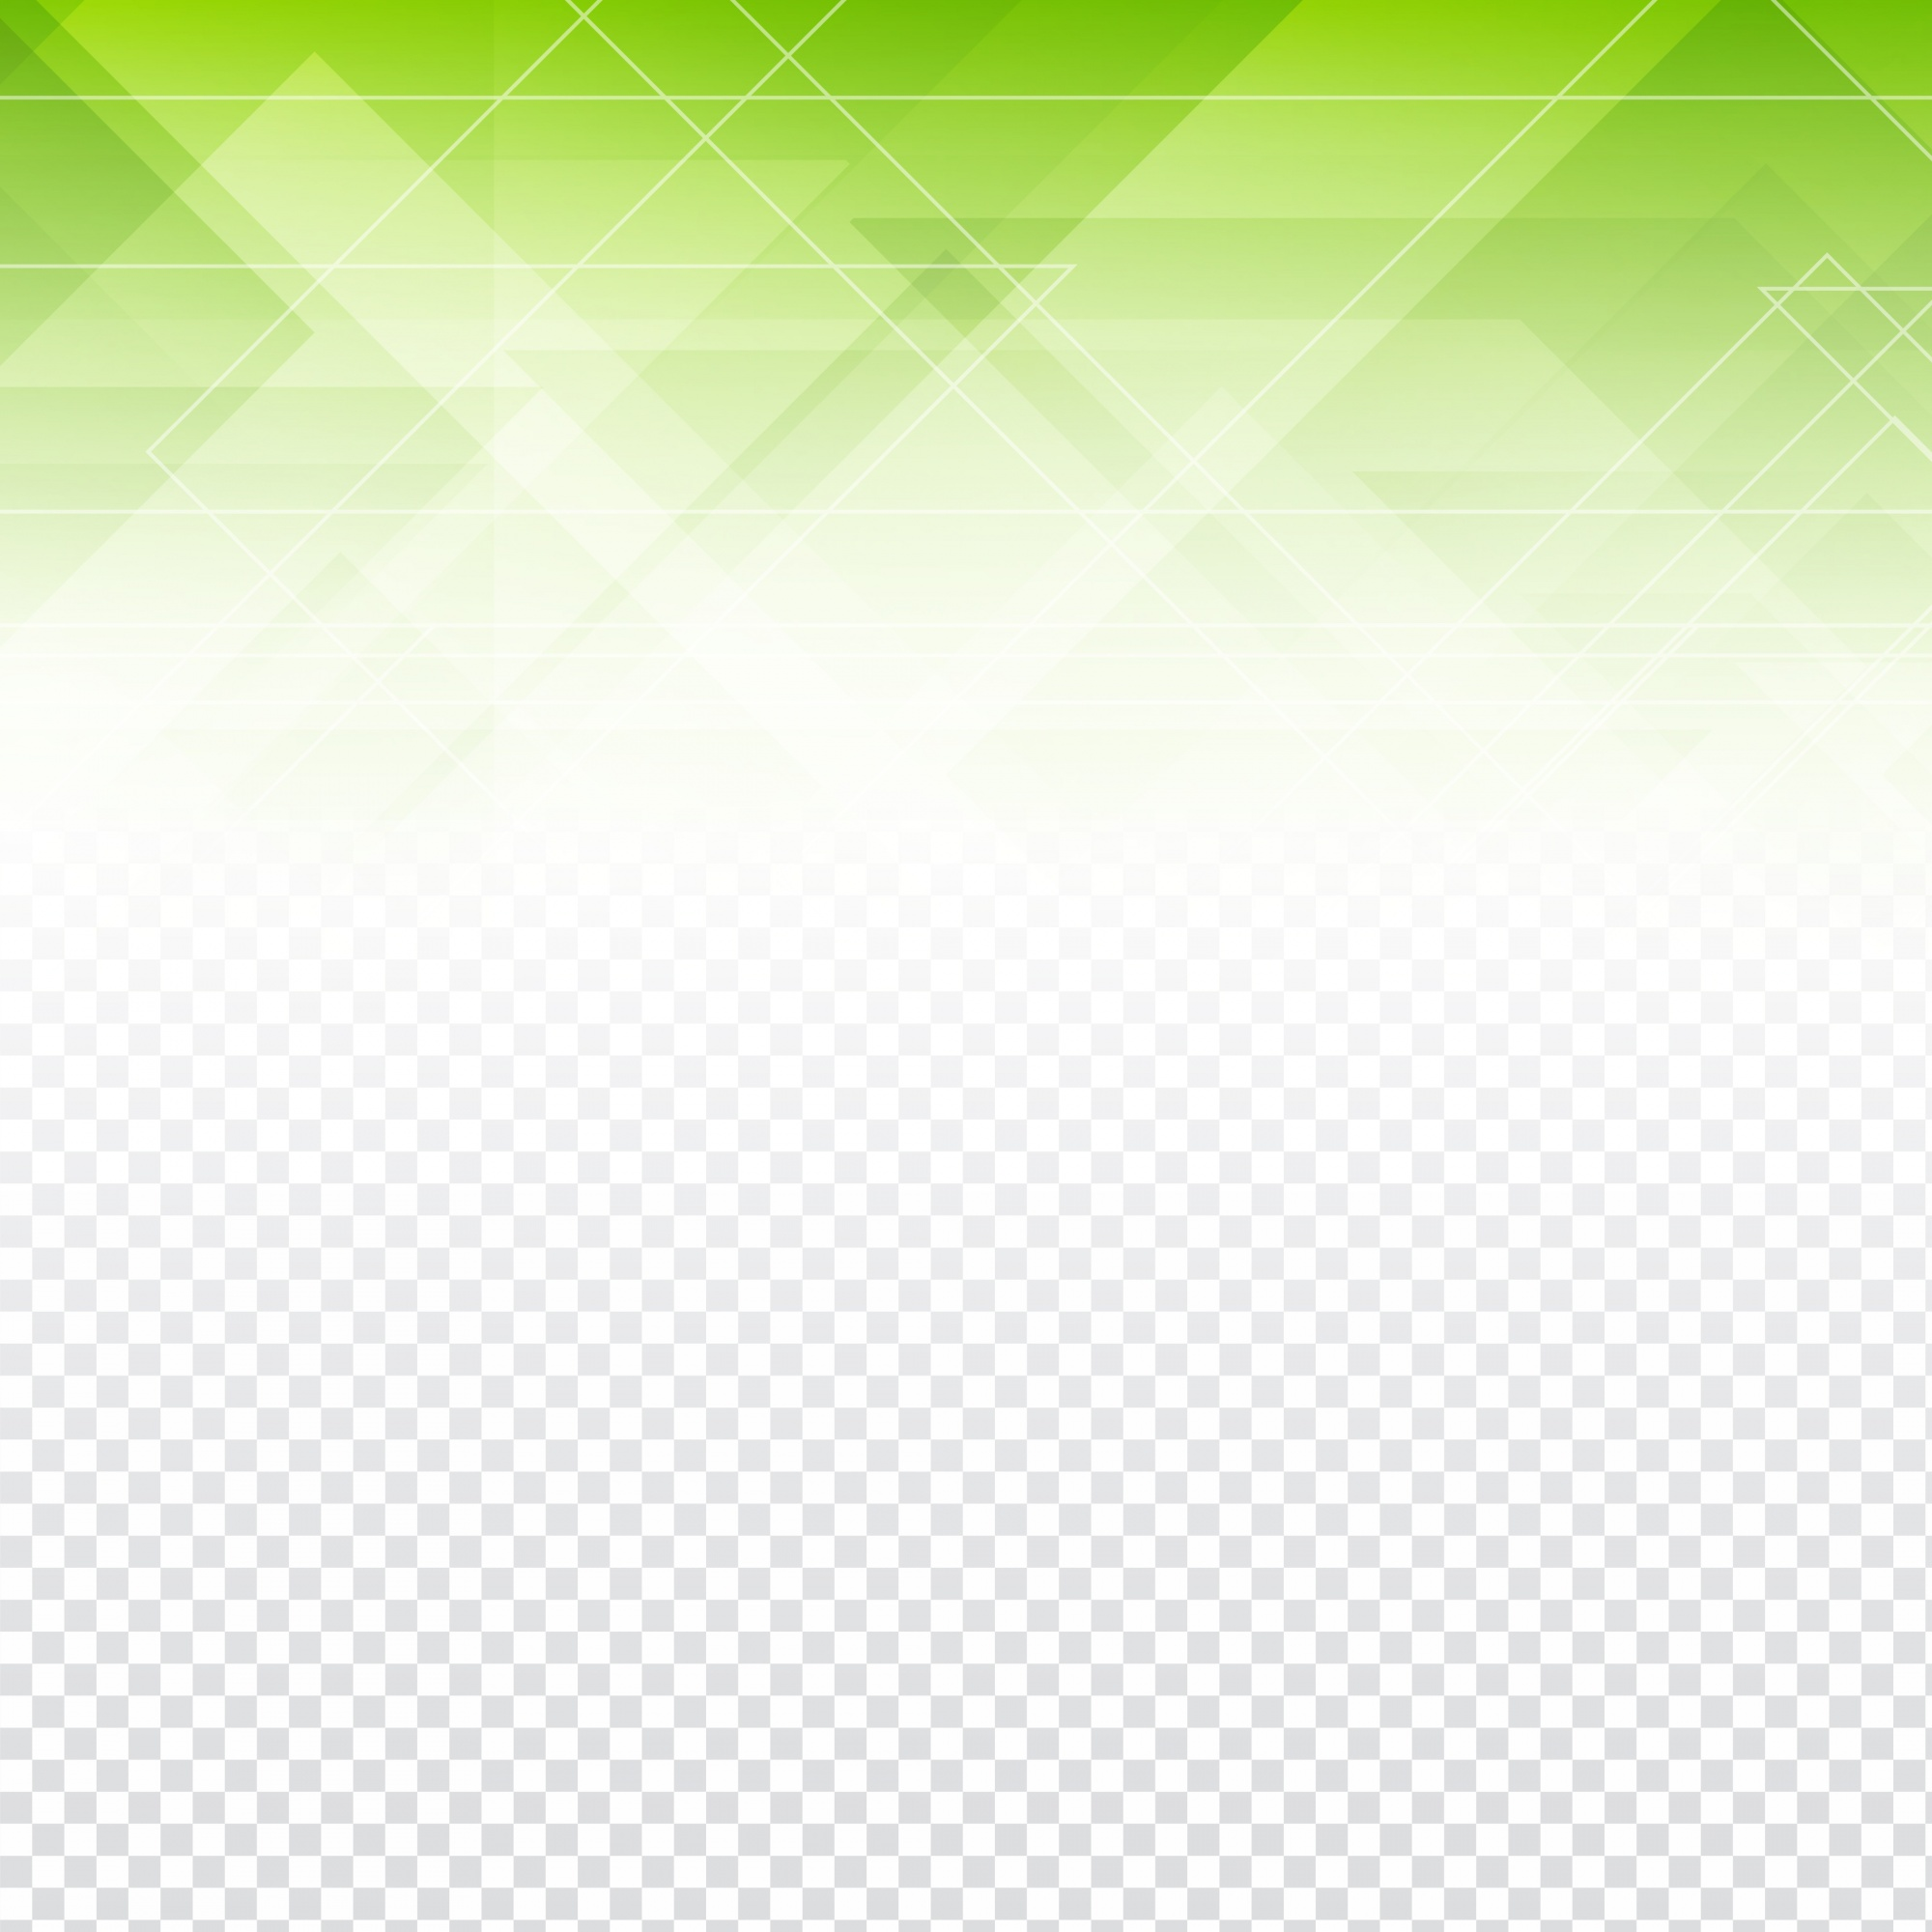 Green polygonal abstract shapes with a transparent background